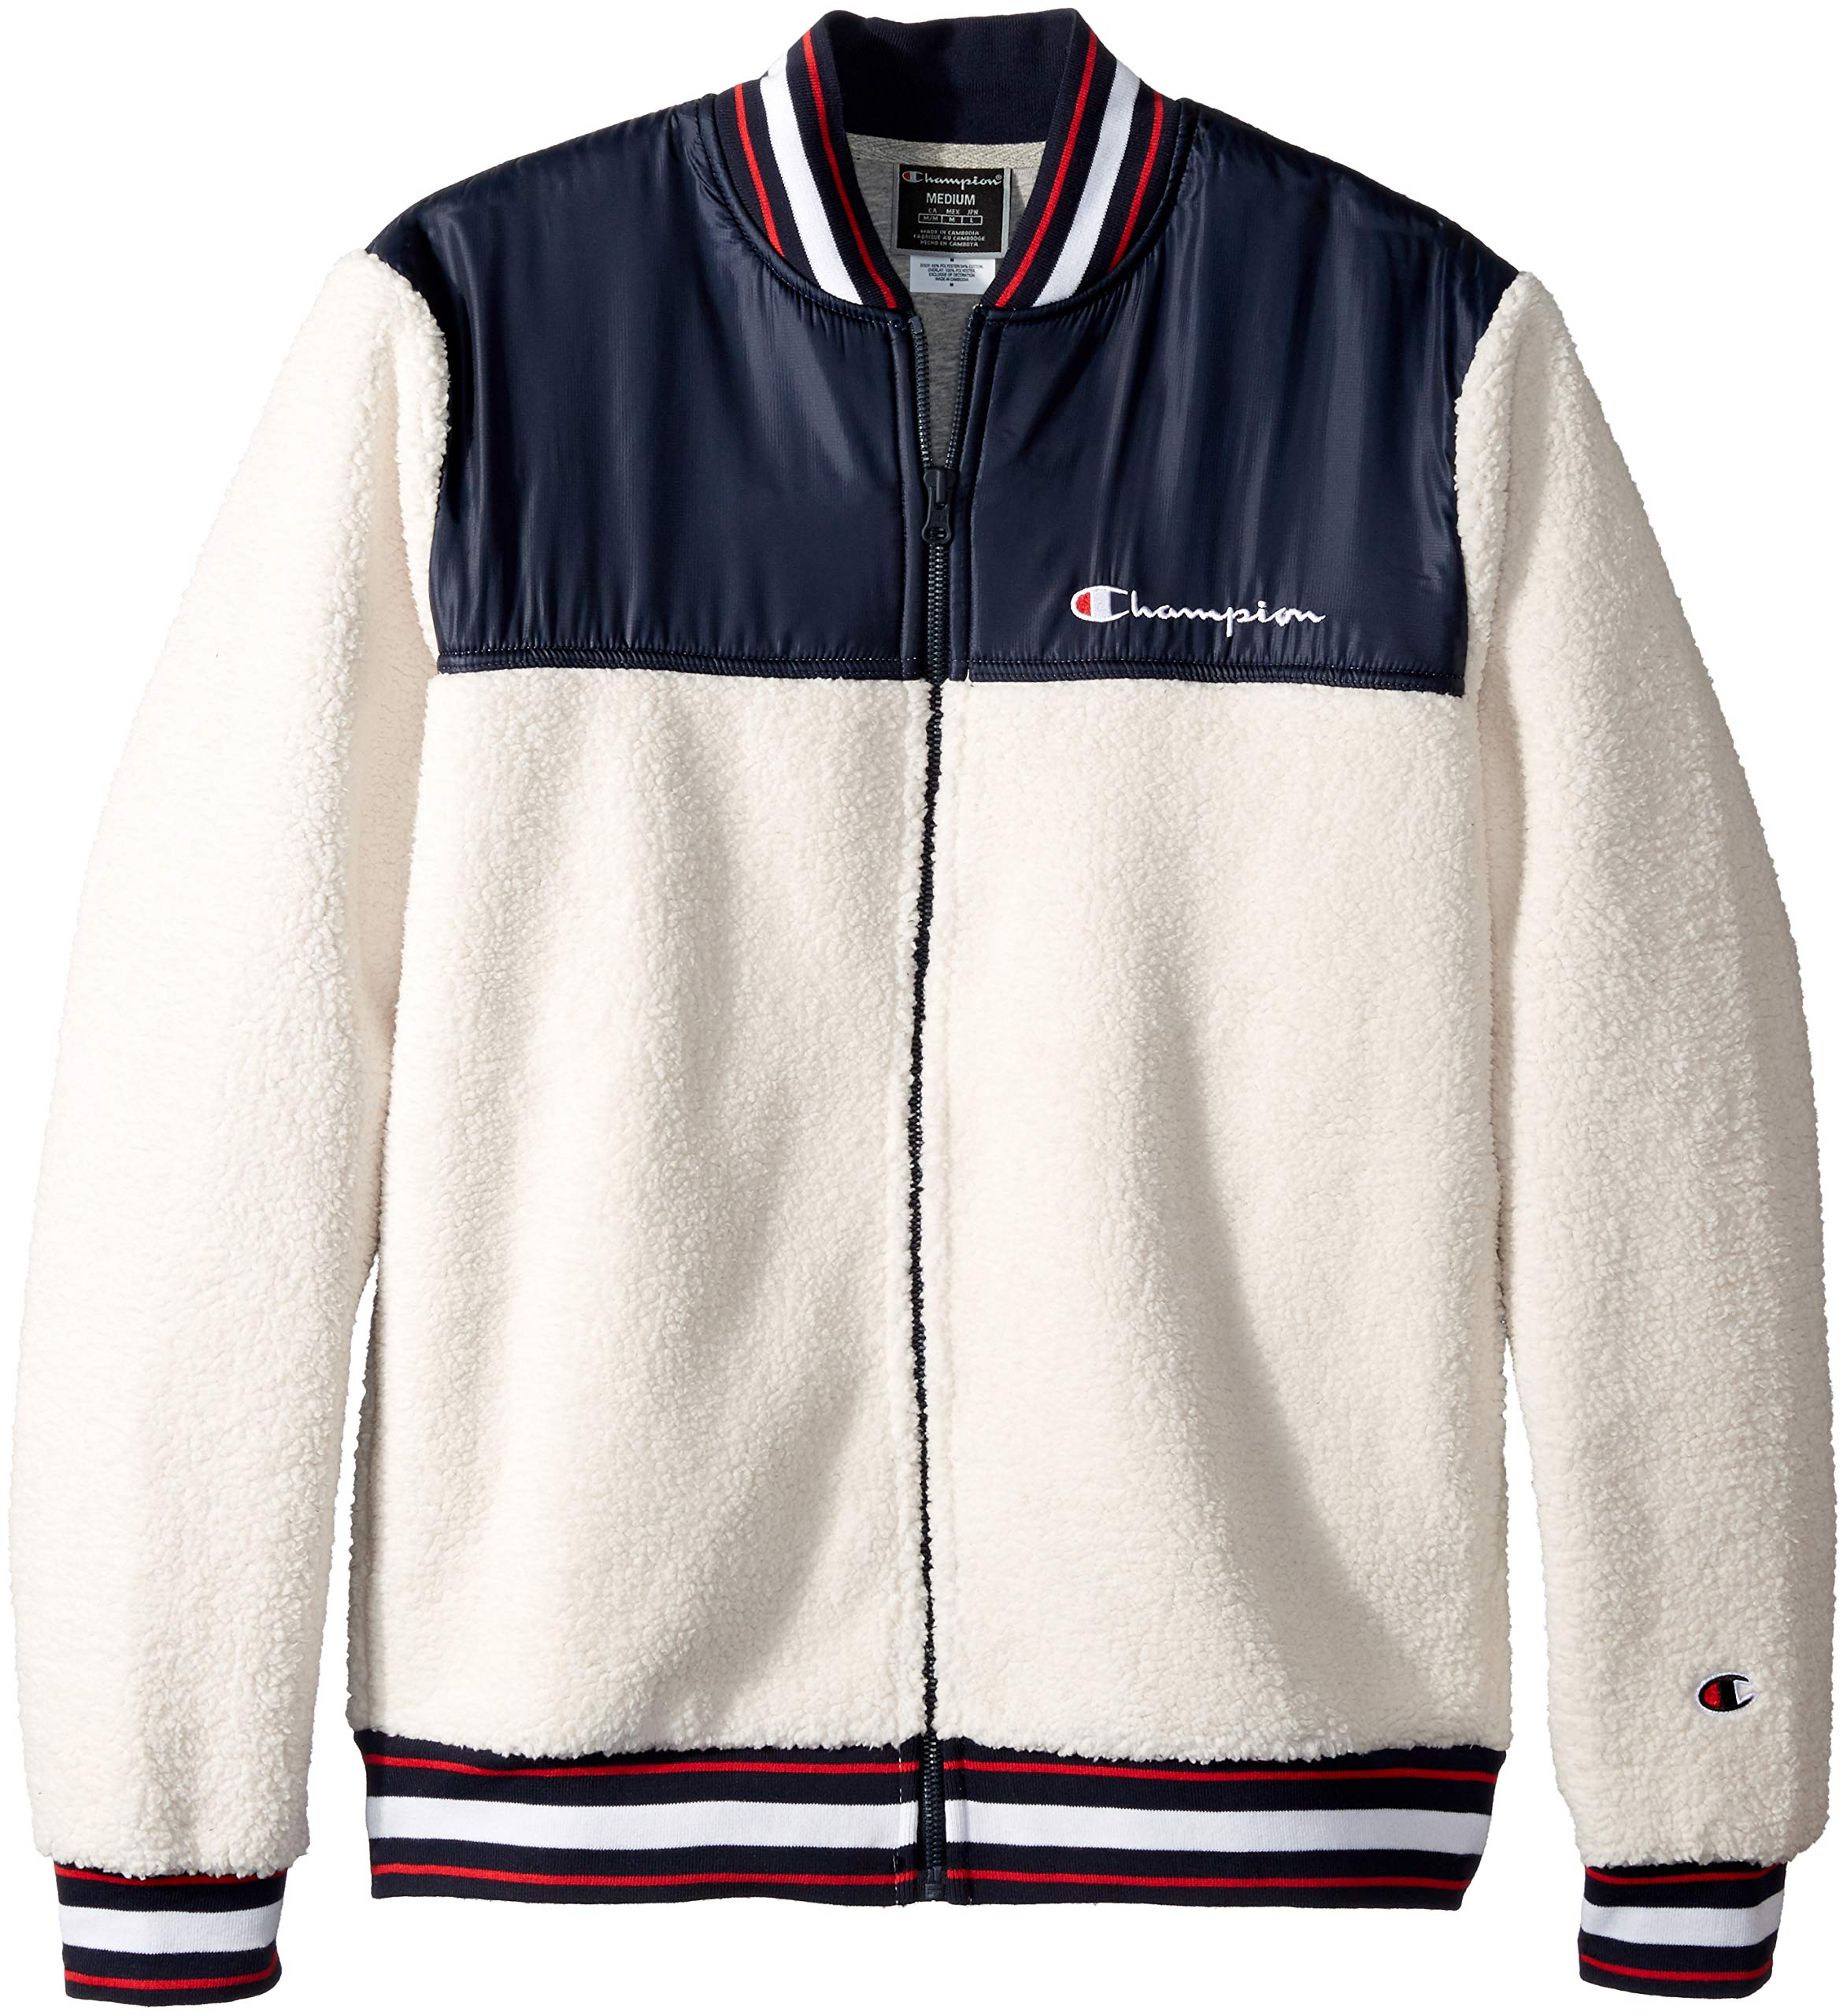 Champion LIFE Men's Sherpa Baseball Jacket, Quartz Cream/Navy, Large by Champion LIFE